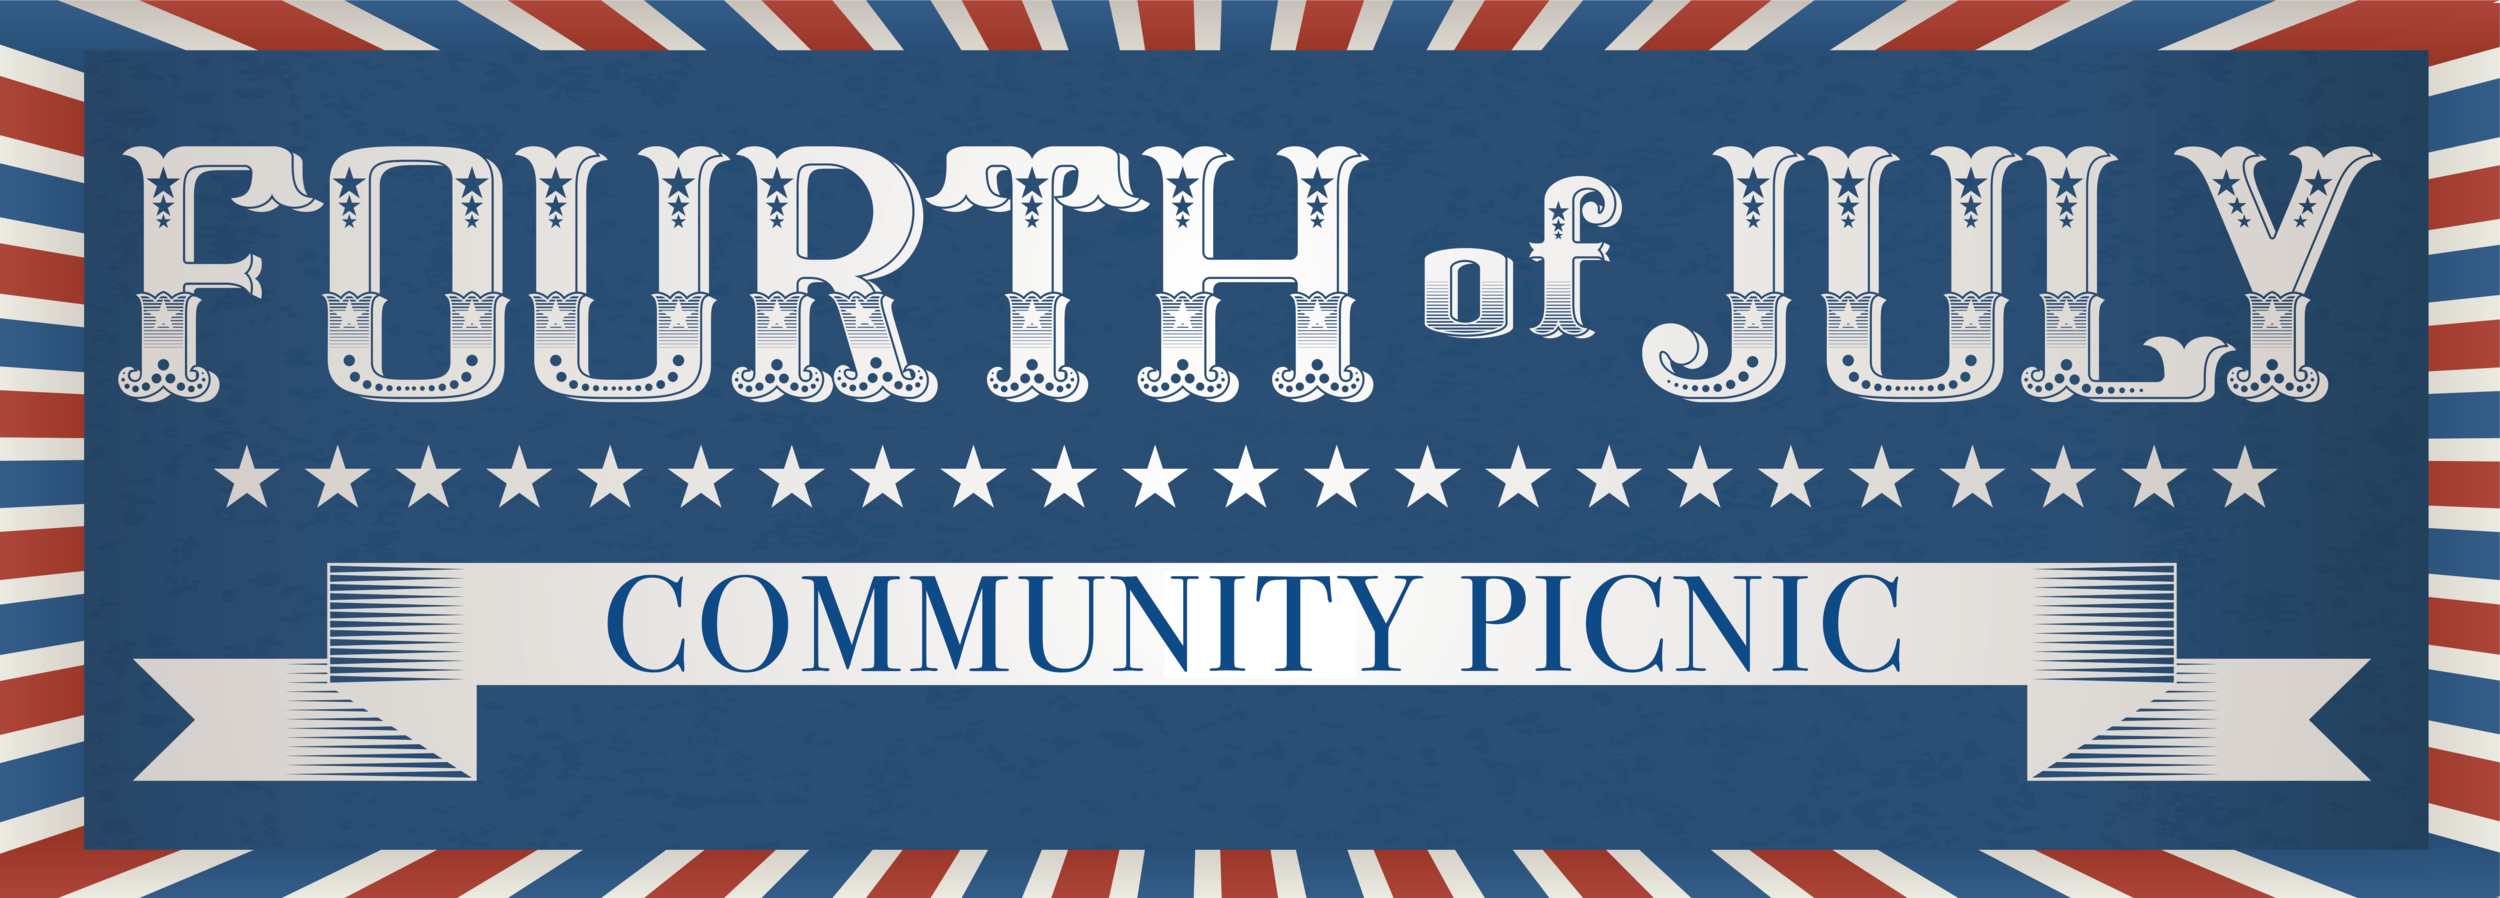 4th of July Picnic - Volunteer - Thursday, July 4th, 12 - 4PM